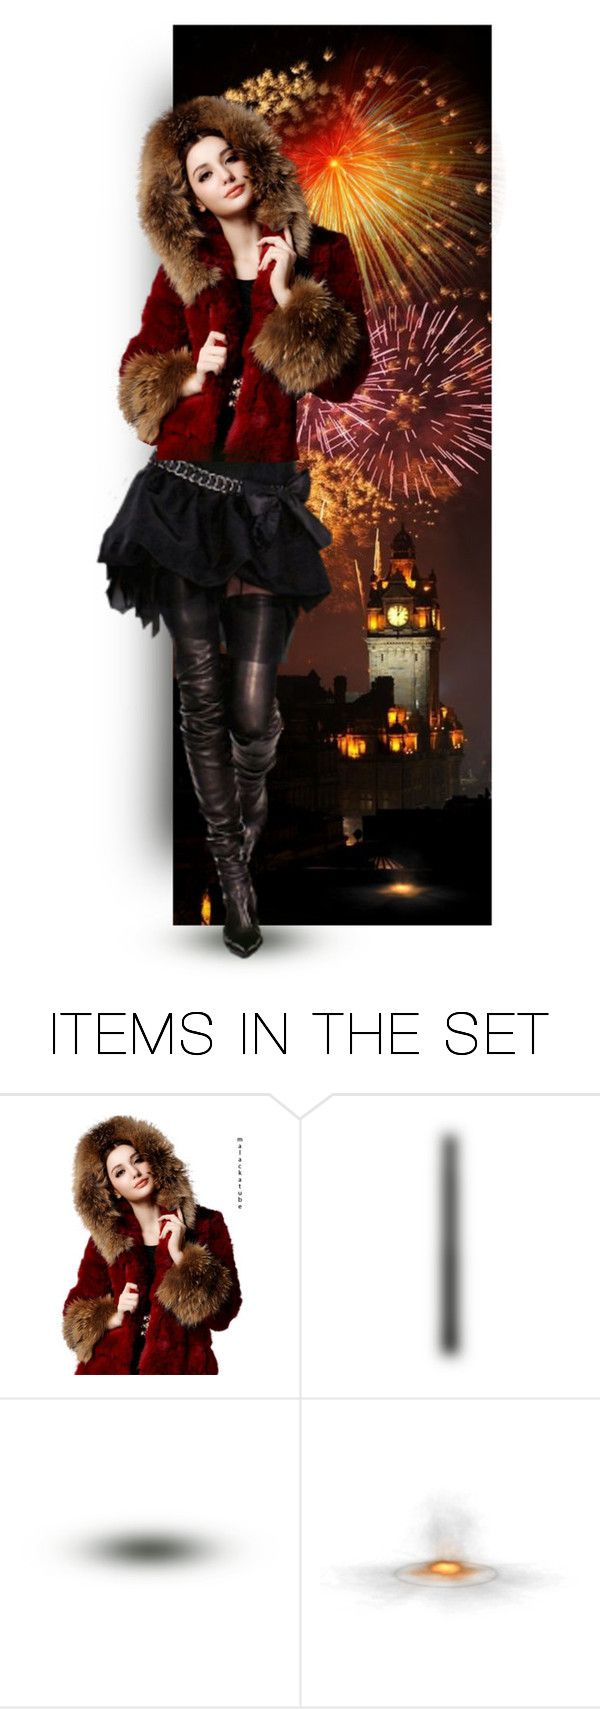 """""""remember remember the 5th of november"""" by art-gives-me-life ❤ liked on Polyvore featuring art, contestentry, alldolledup and contestlink"""